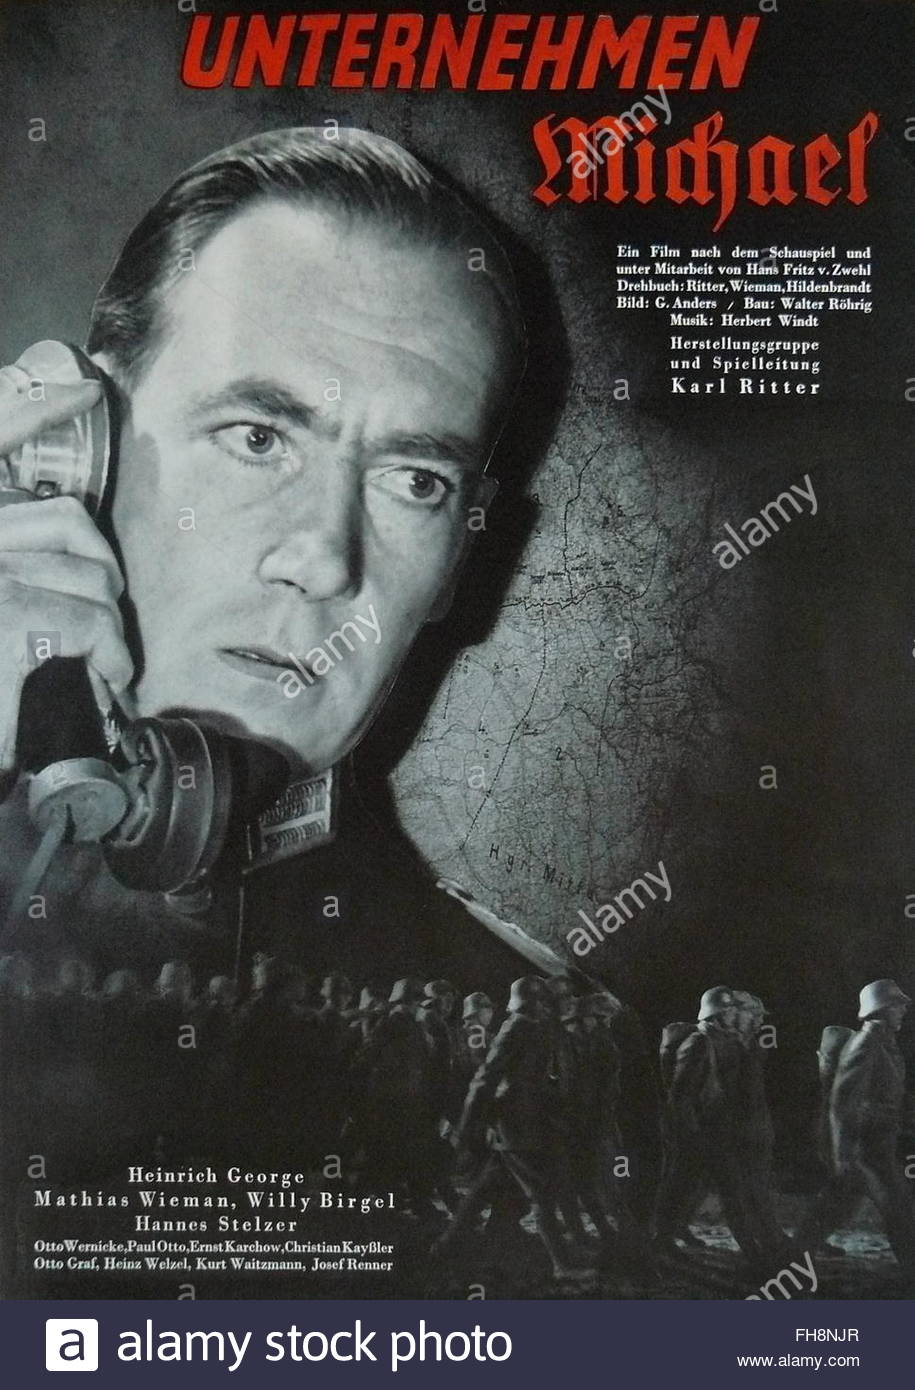 movie poster, 'The Private's Job' (Unternehmen Michael), DEU 1937, director: Karl Ritter, movie with: - Stock Image